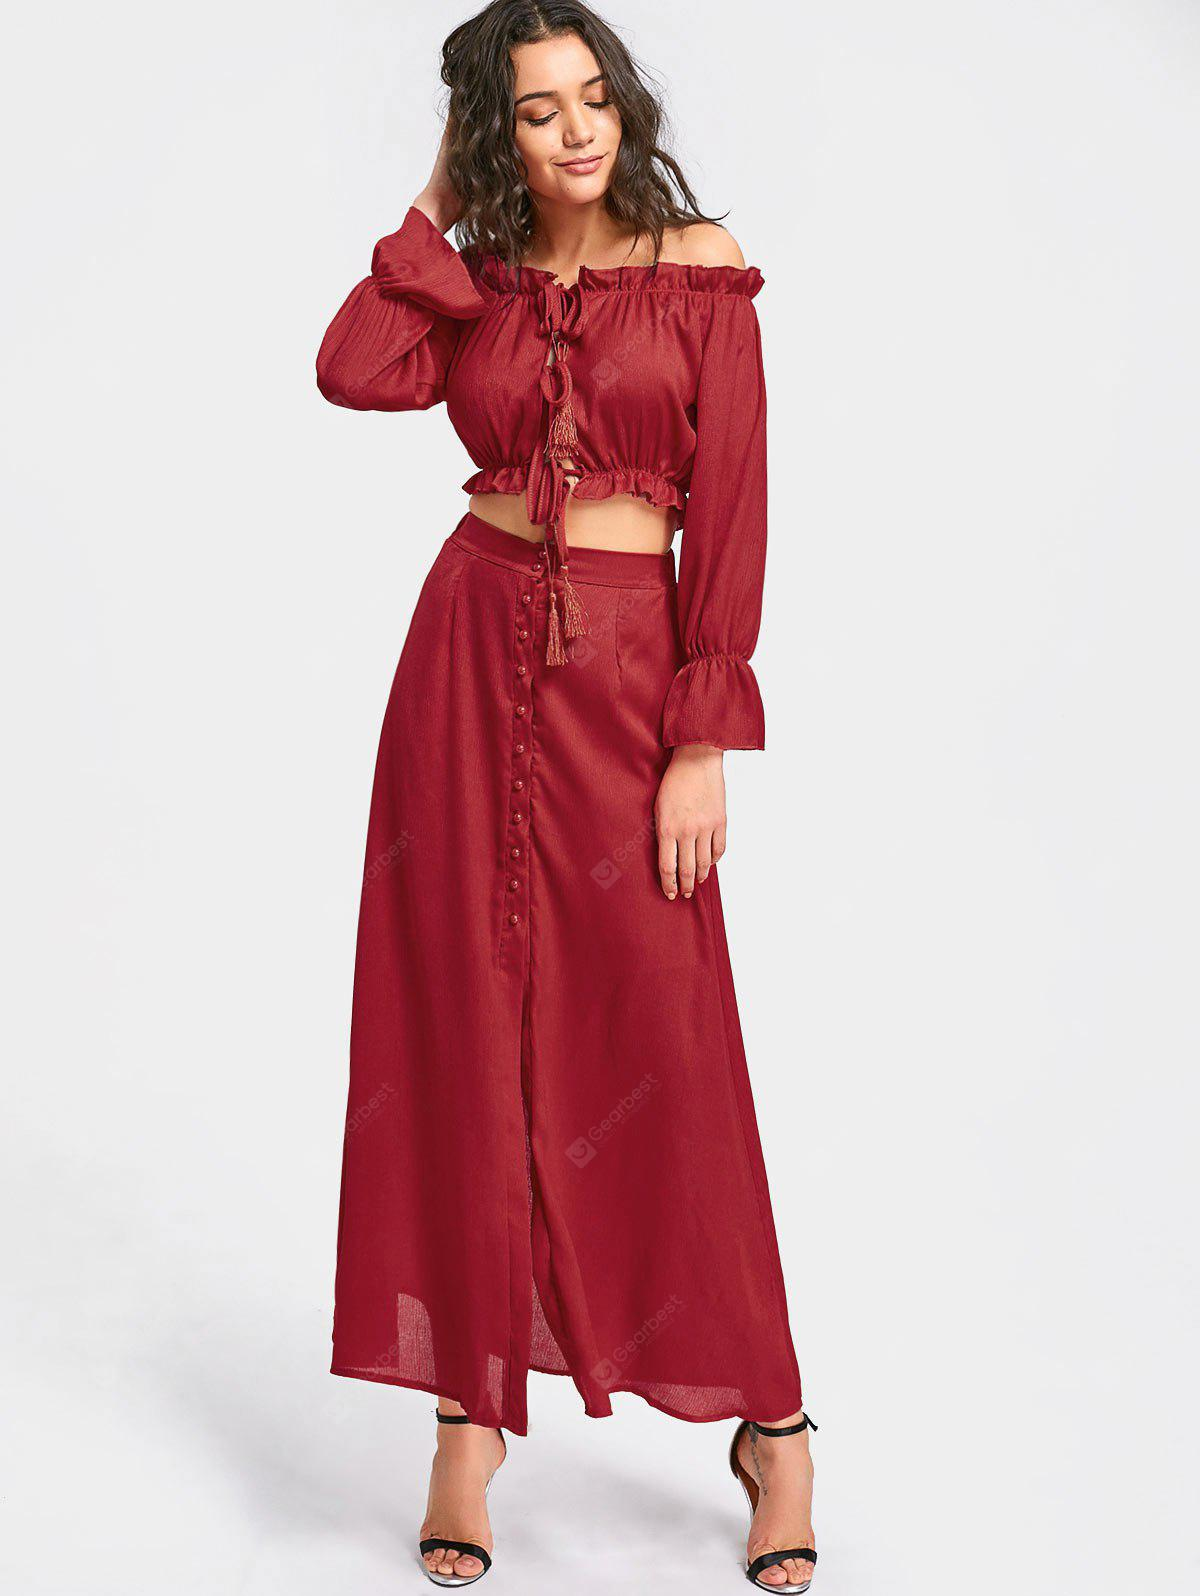 DEEP RED M Ruffled Crop Top with Maxi Skirt Set